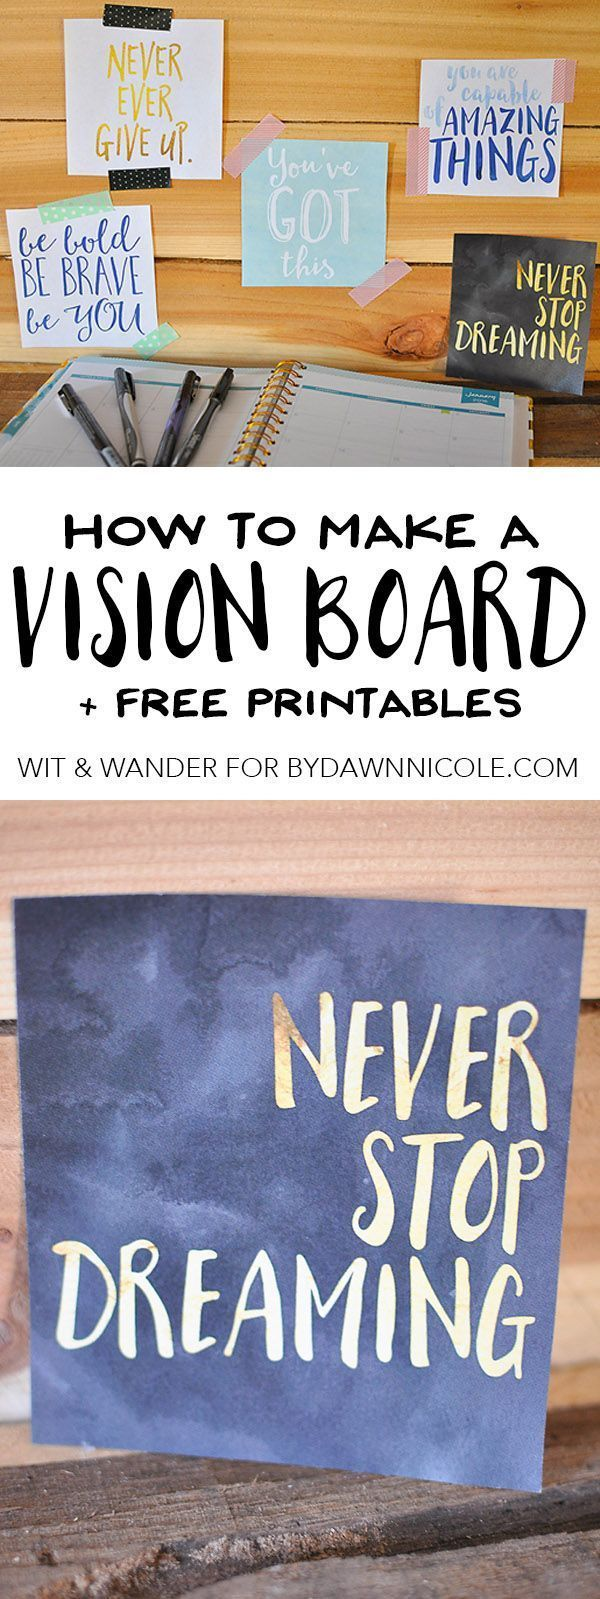 How to Make a Vision Board + Free Printables Making a